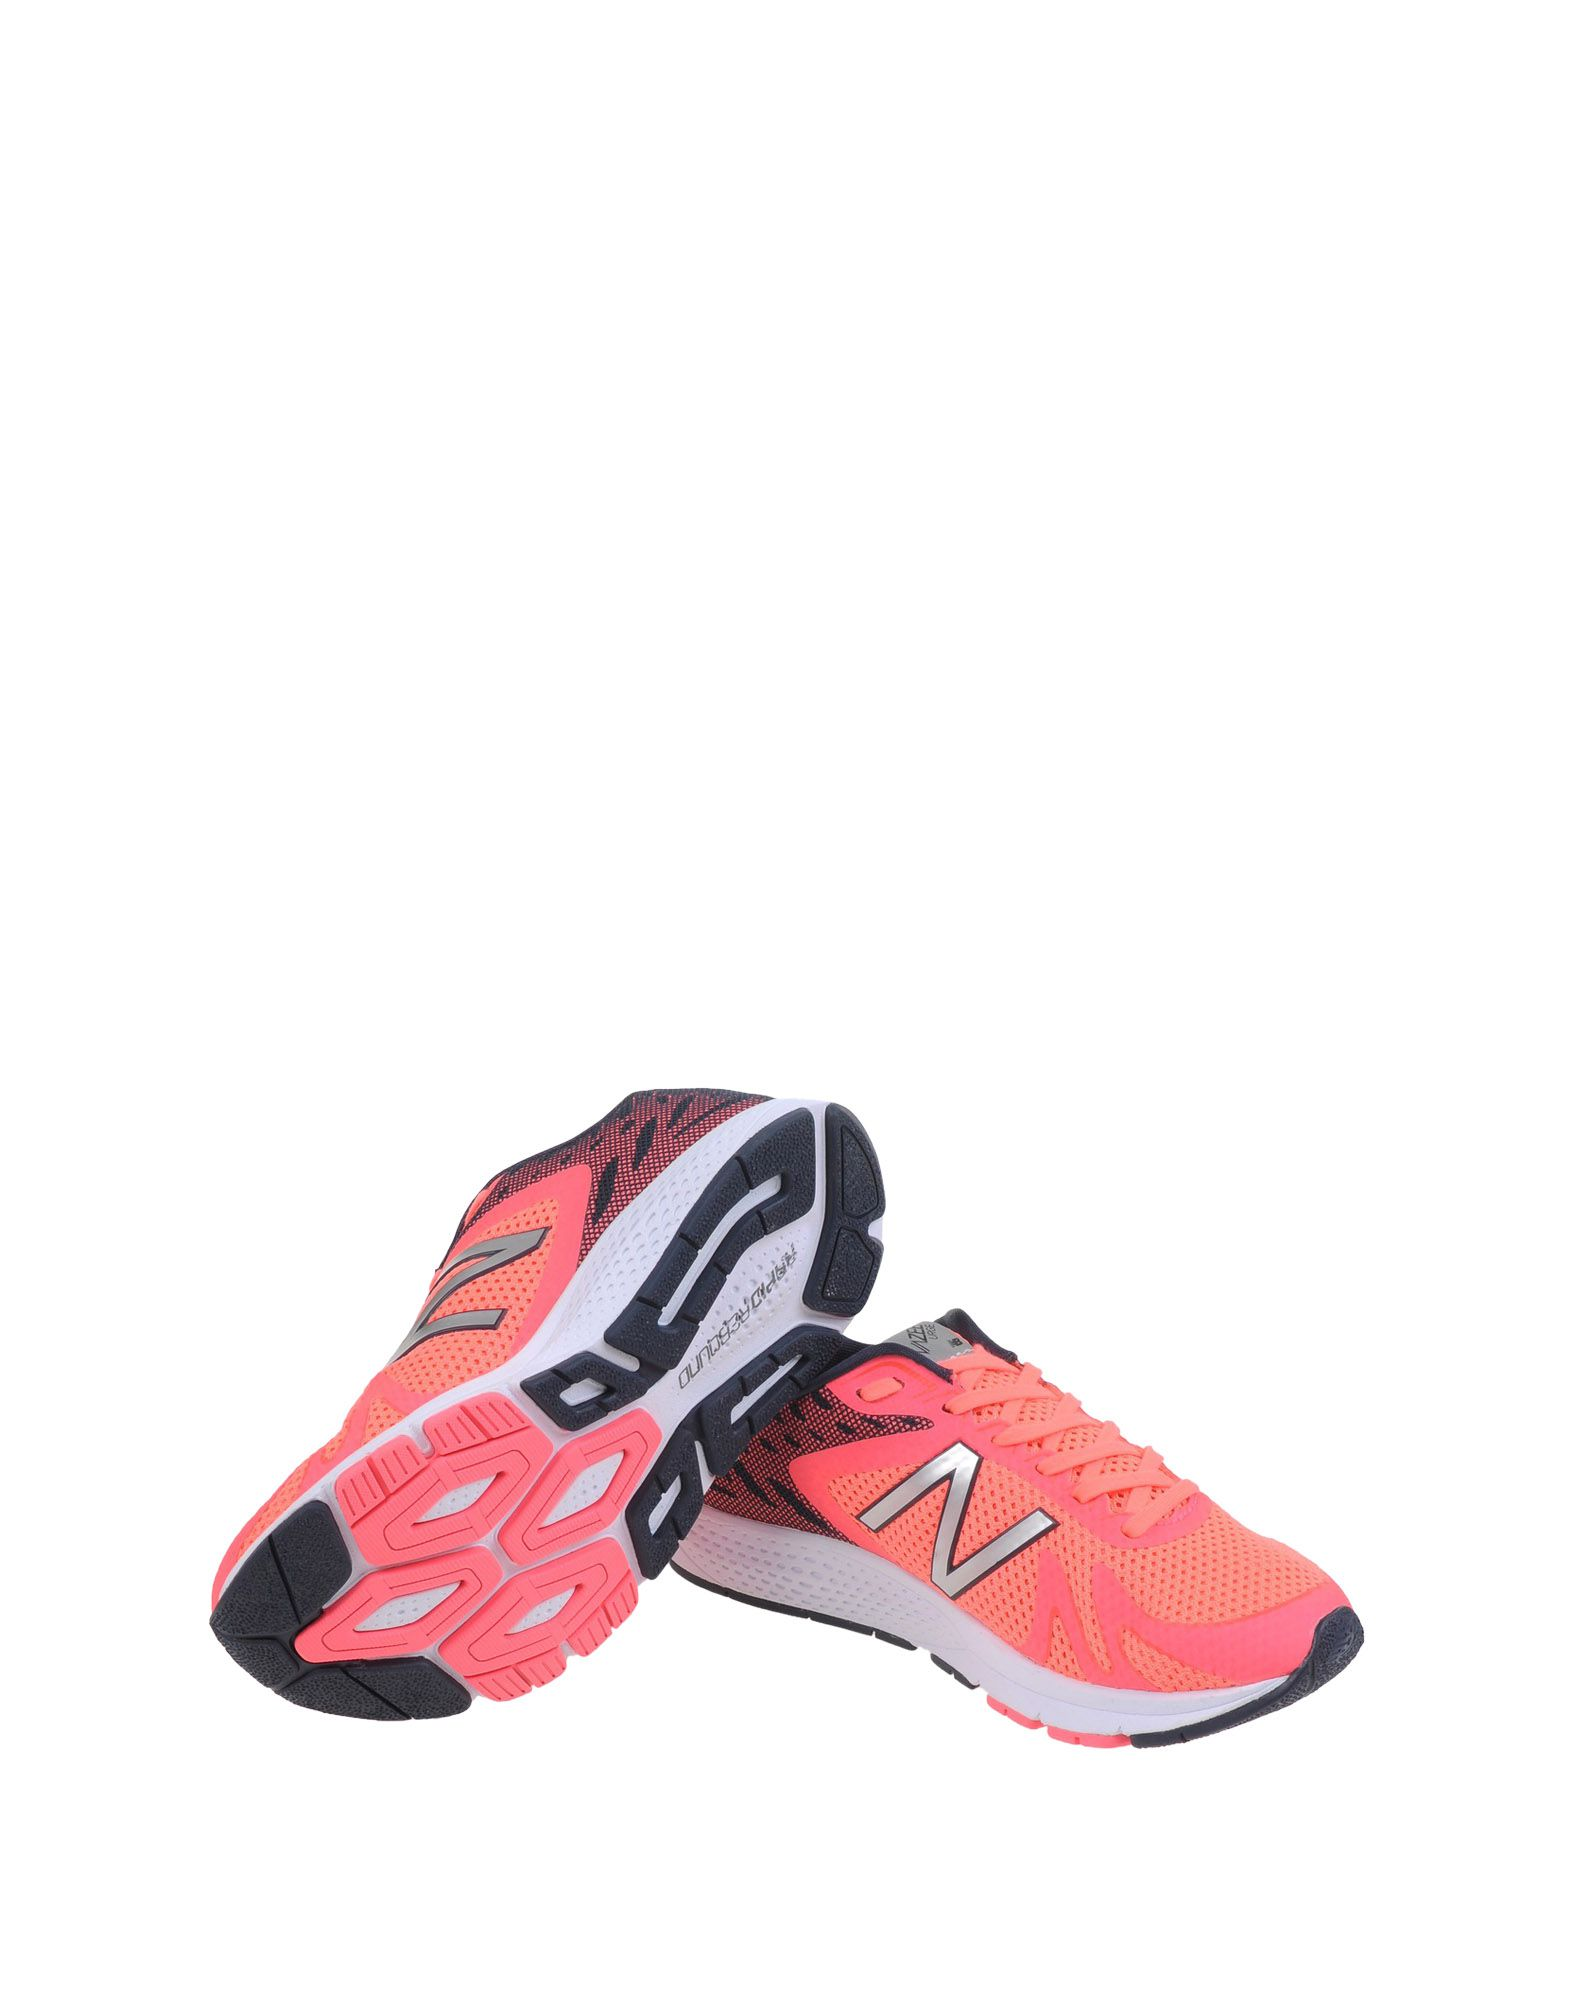 Sneakers New Balance Vazee Urge - Femme - Sneakers New Balance sur